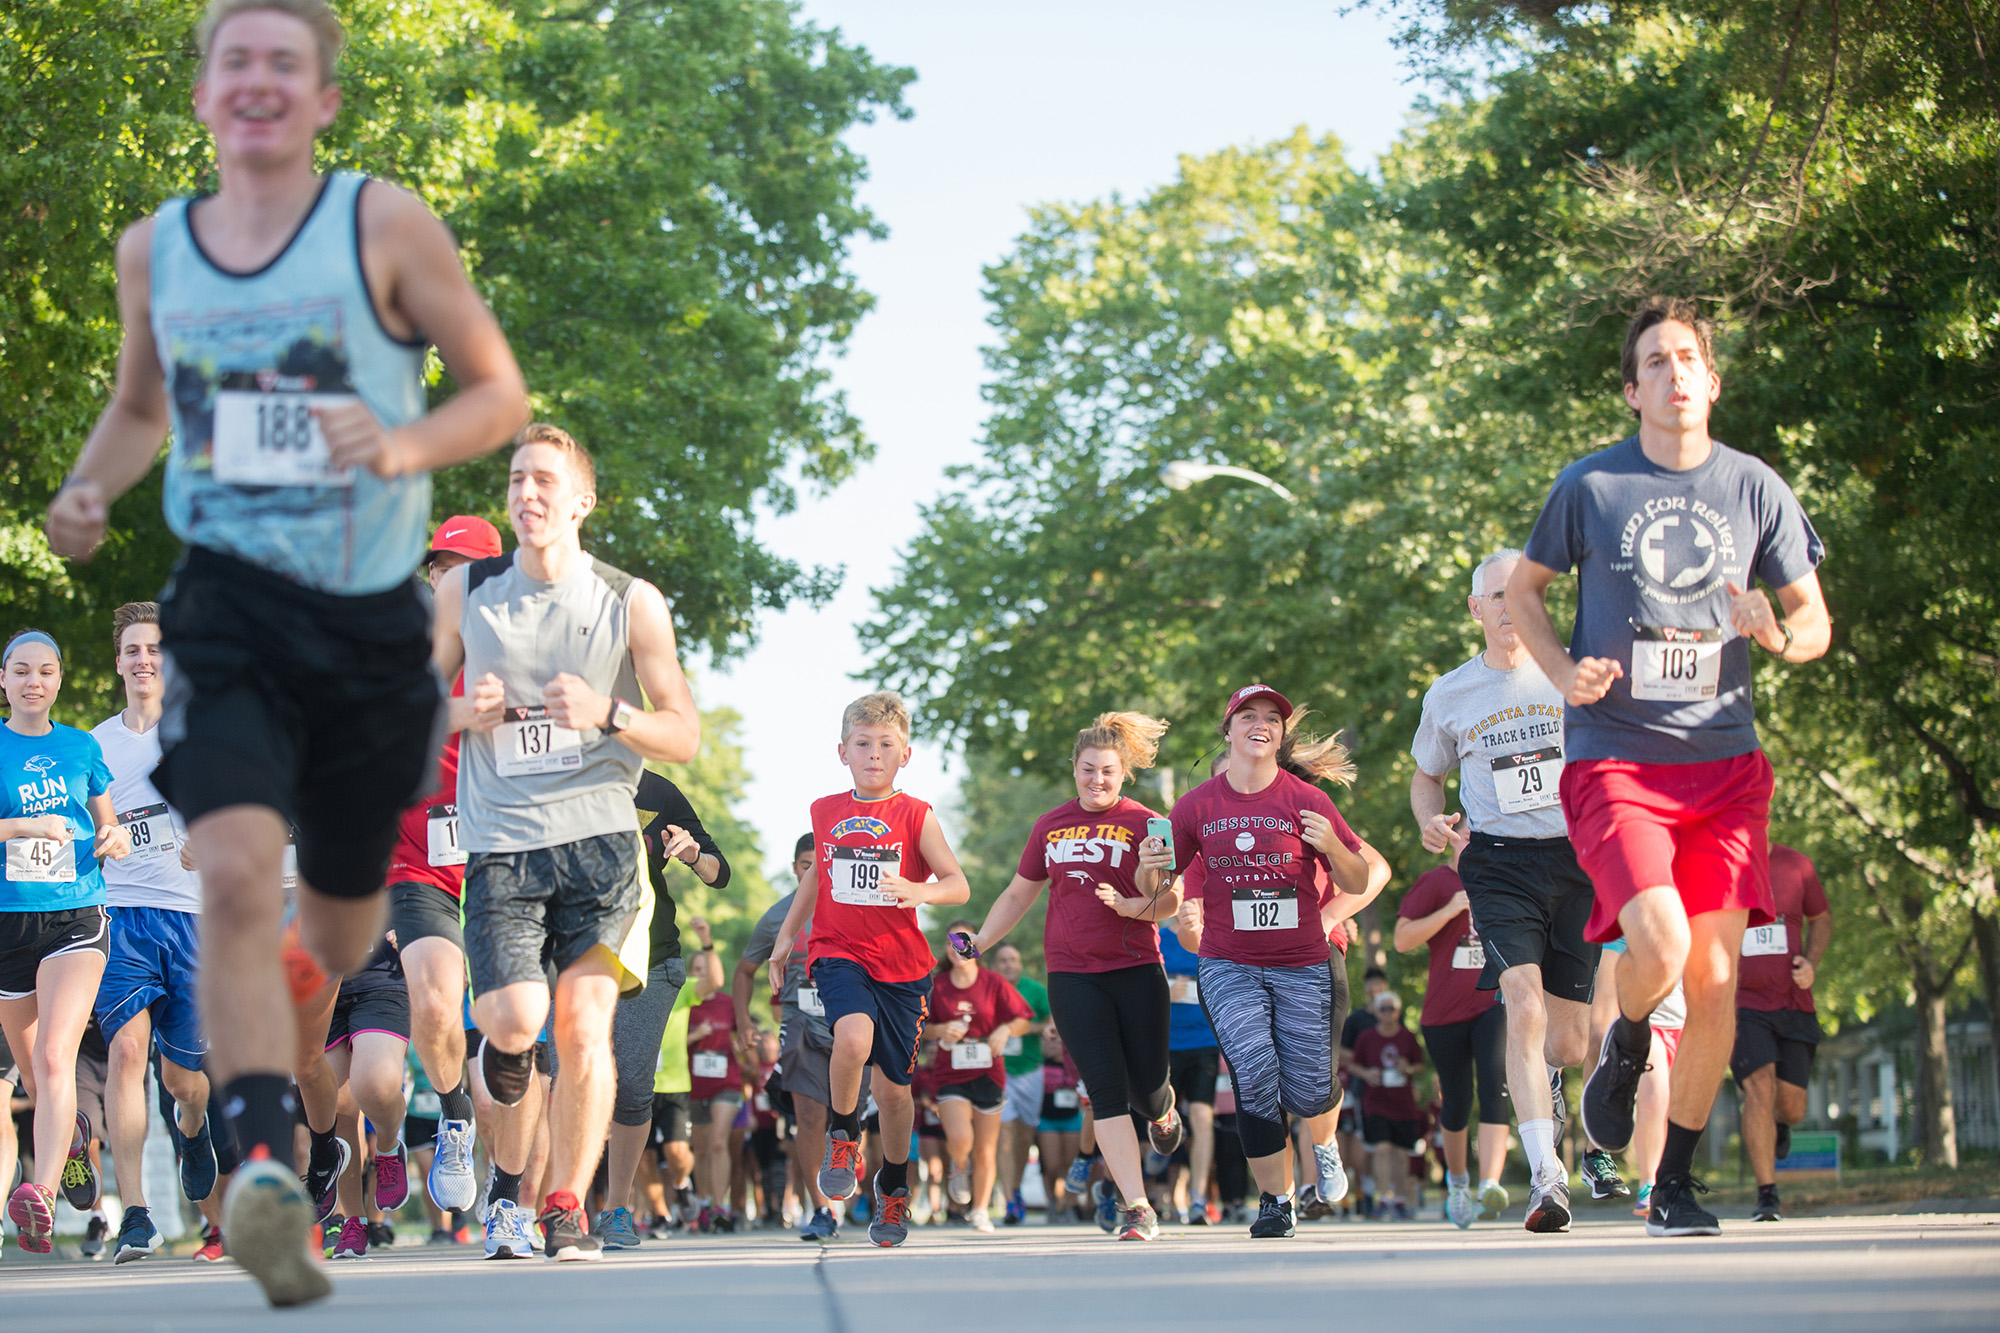 Runners start the Manickam Mosey two-mile run/walk on Saturday morning.